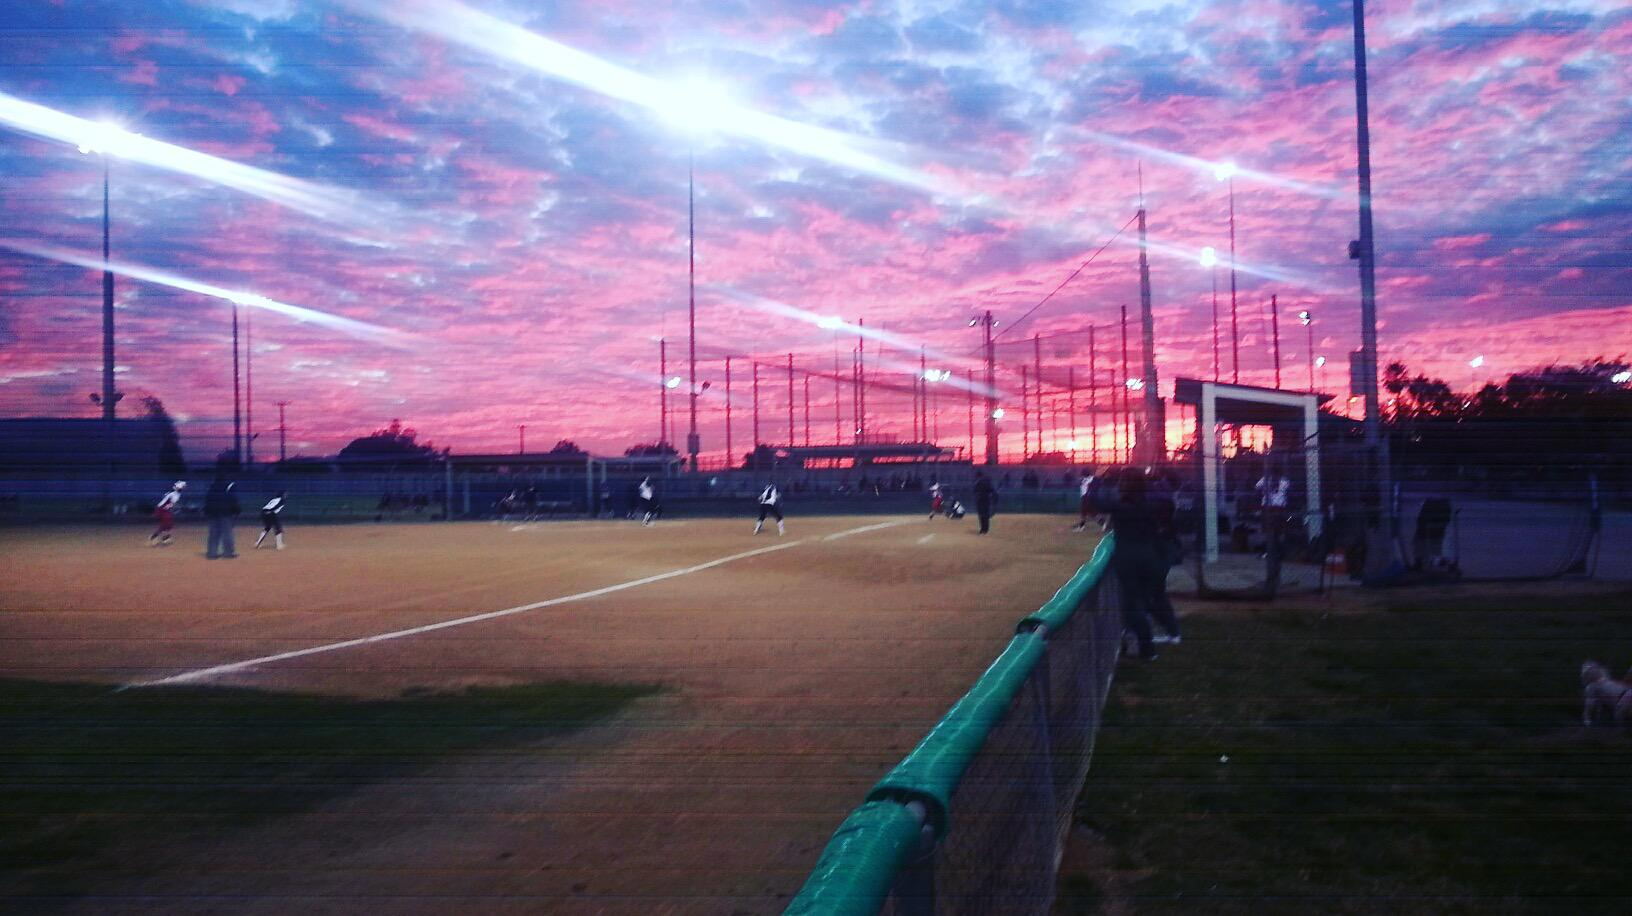 The Factory Fastpitch Club